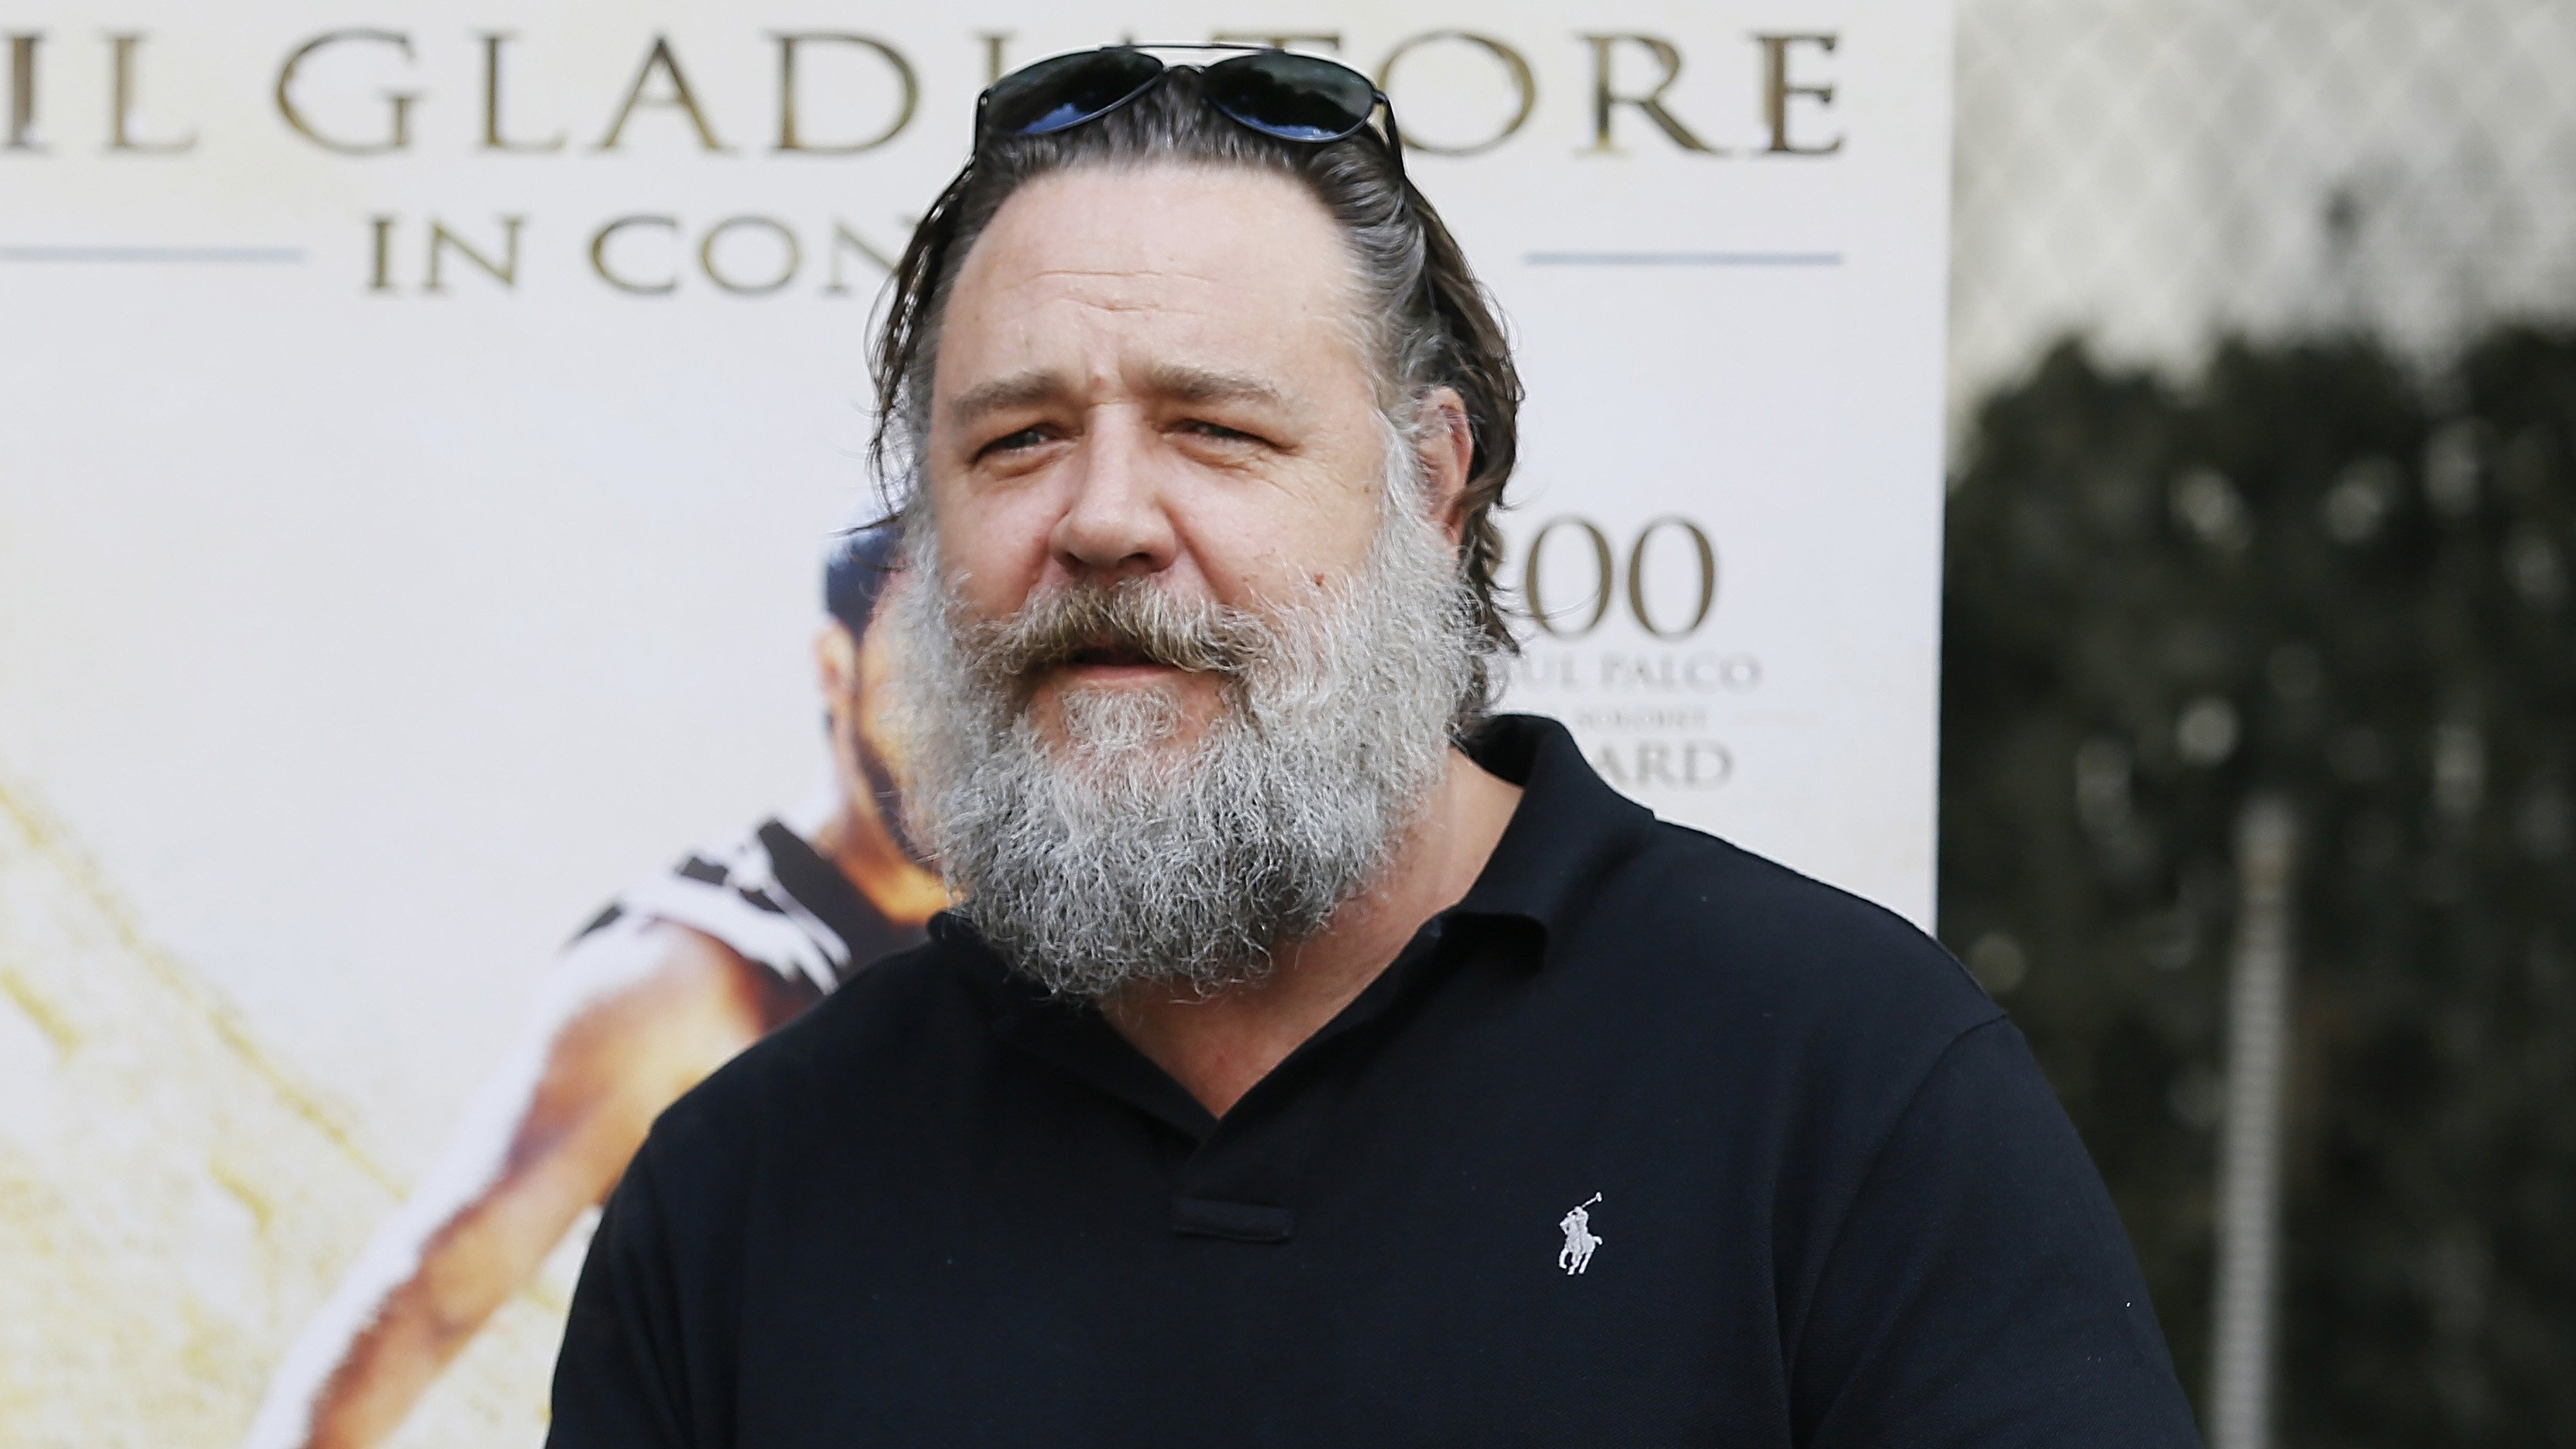 russell crowe weight gain beard Here's What Your Favourite 1980s Neighbours Stars Look Like Today!